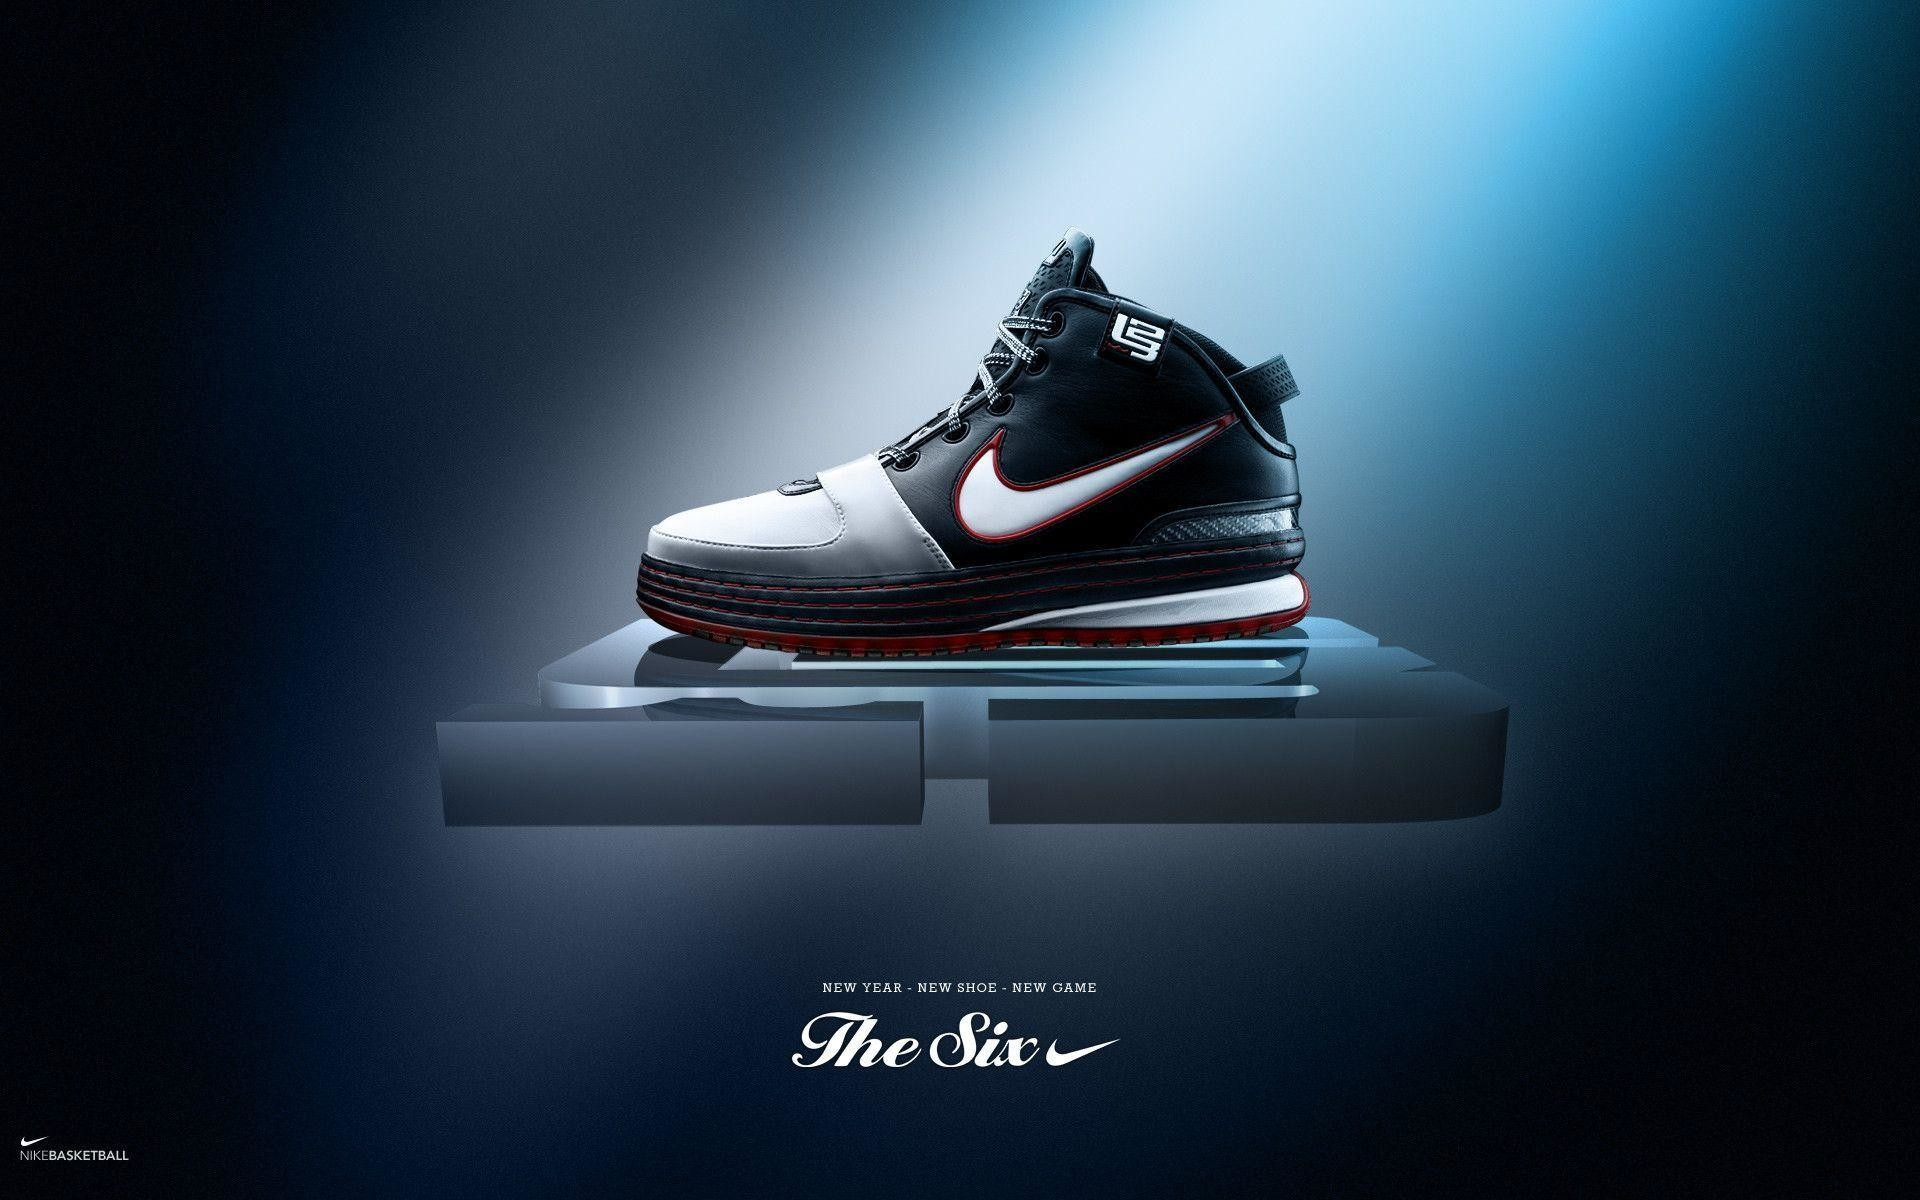 Nike Shoes Wallpapers Desktop (60+ images)